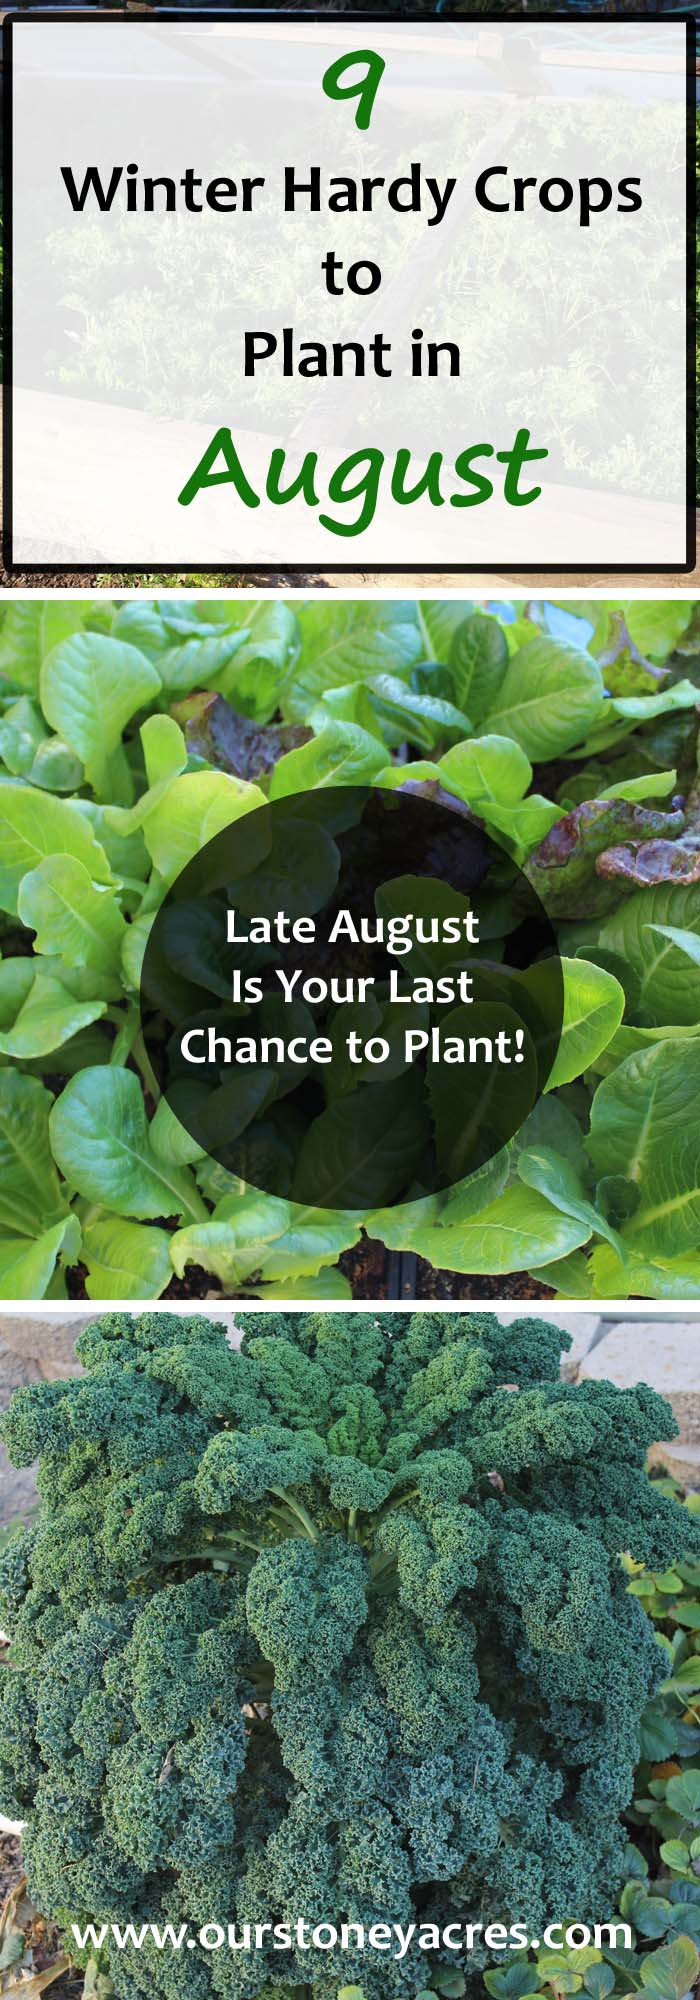 August Planting Guide #5